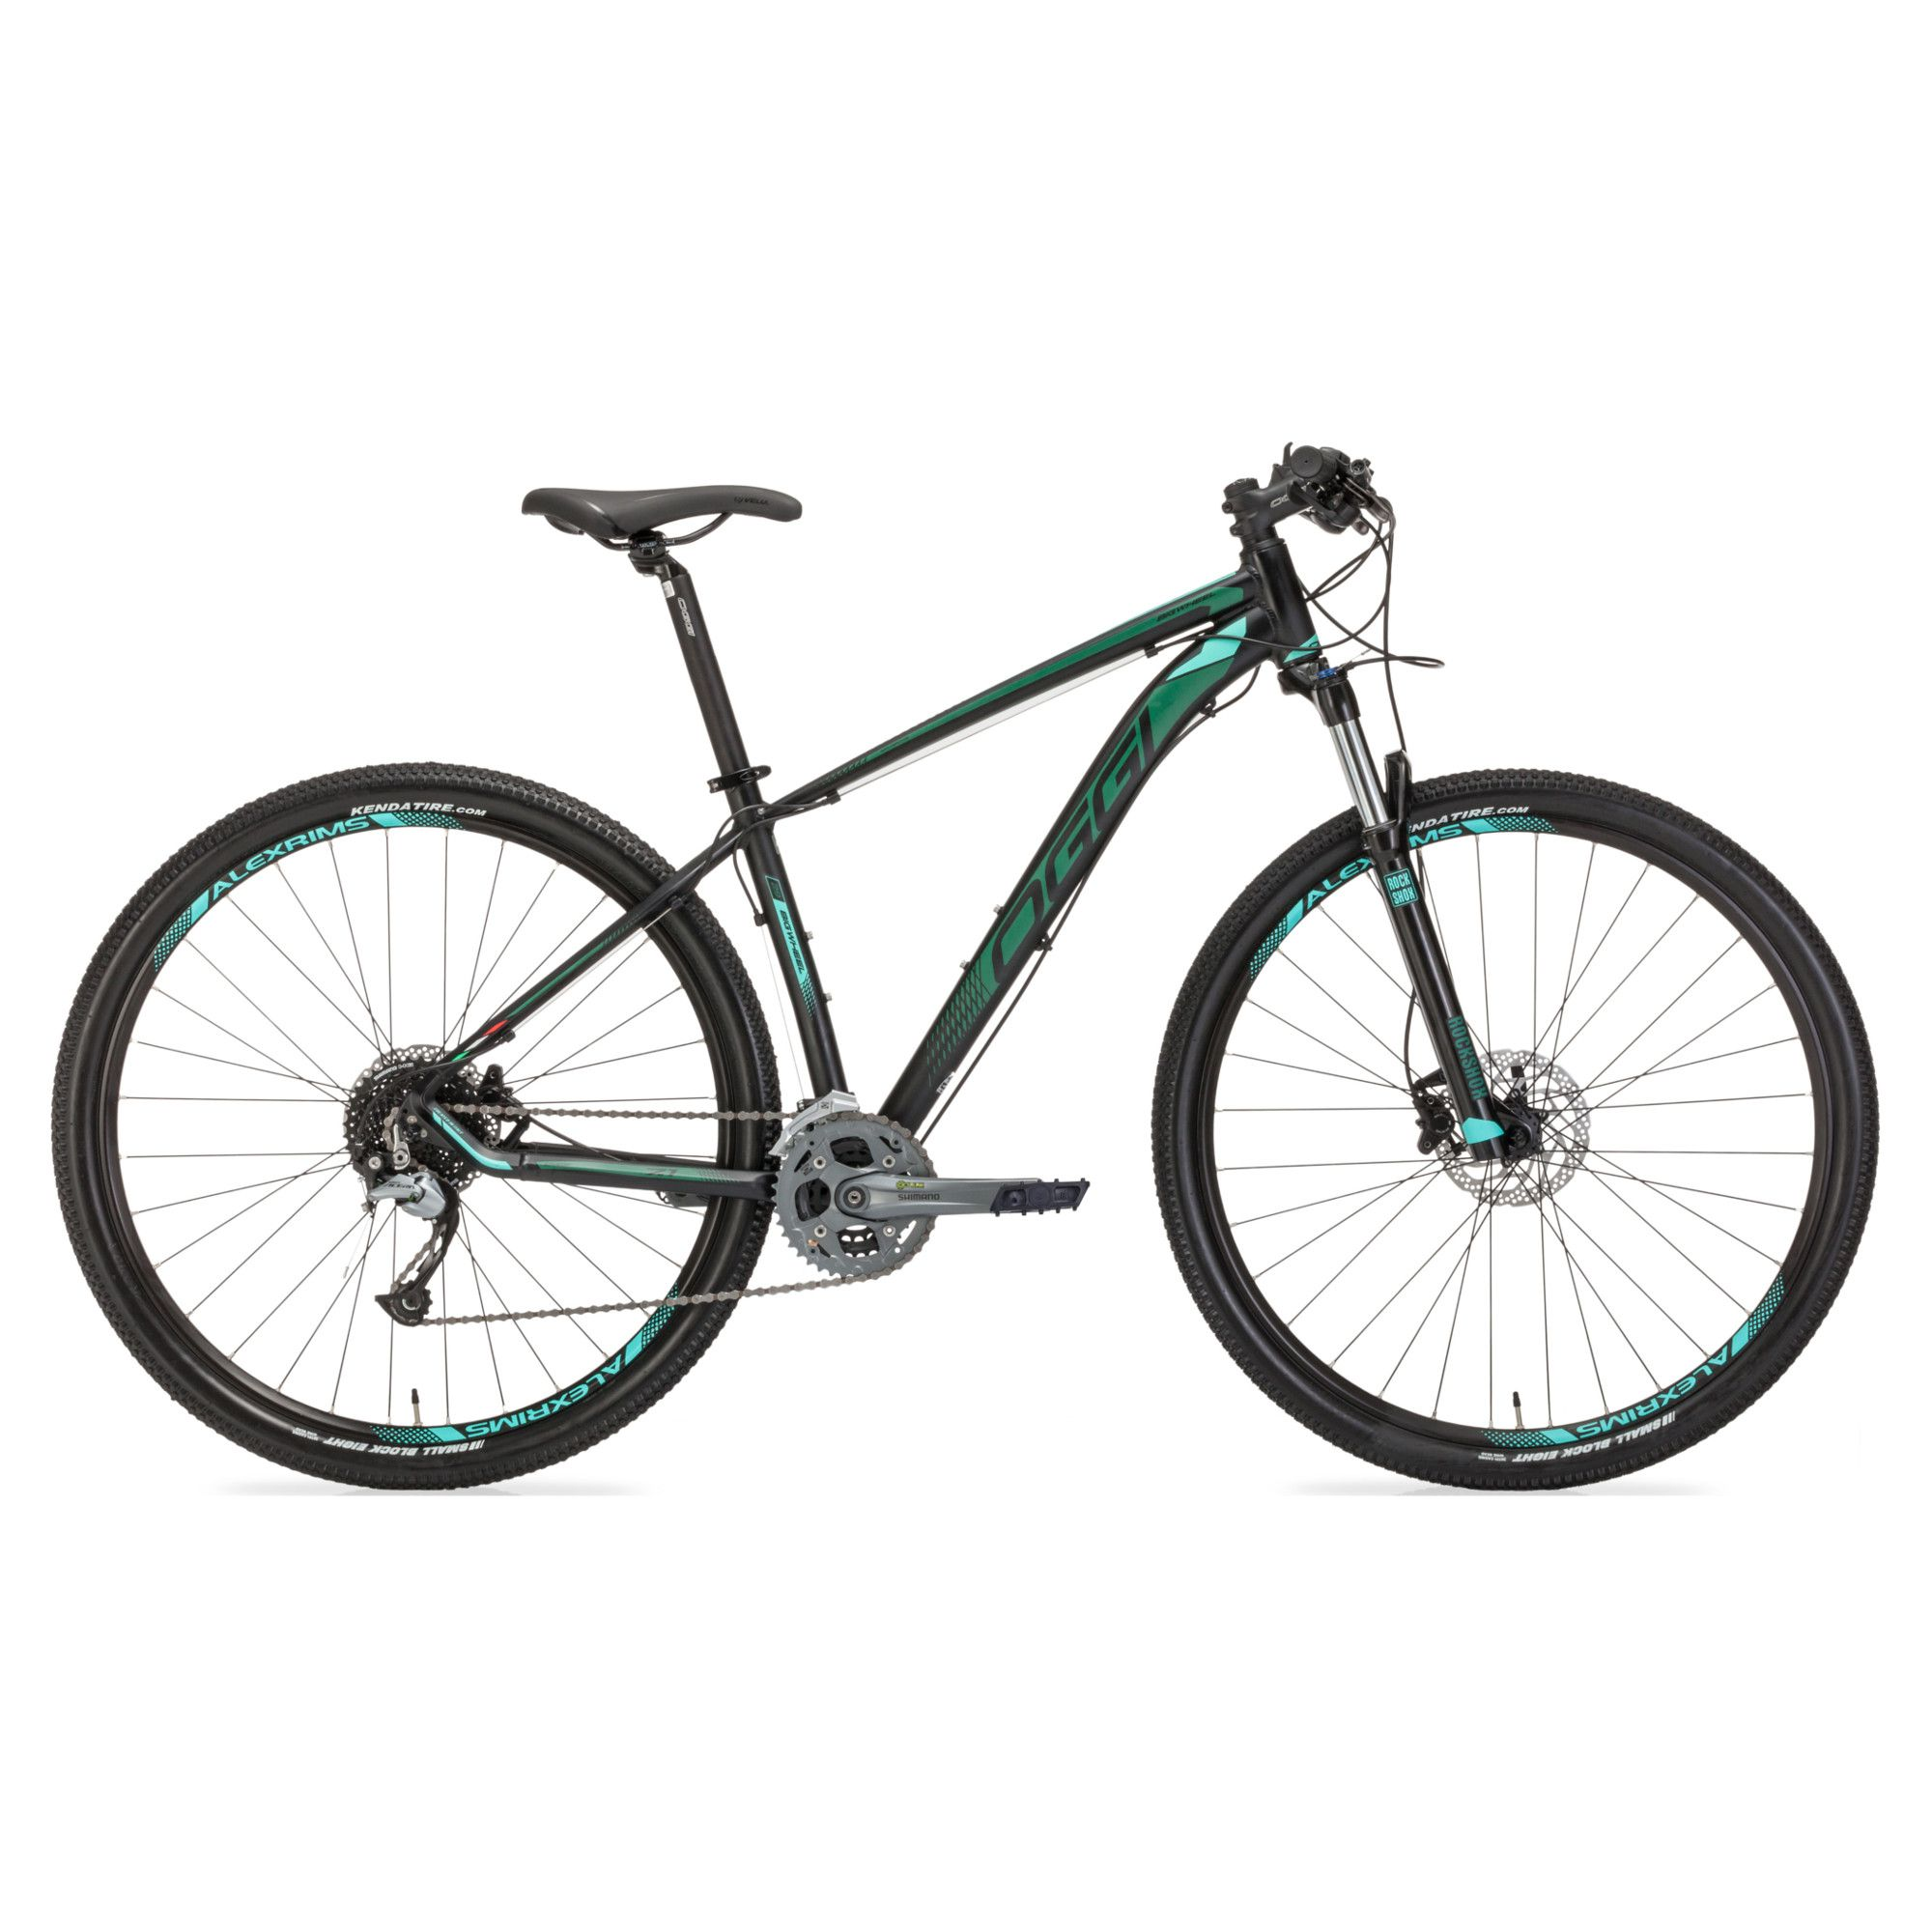 Bicicleta MTB Oggi Big Wheel 7.1 27v 2019